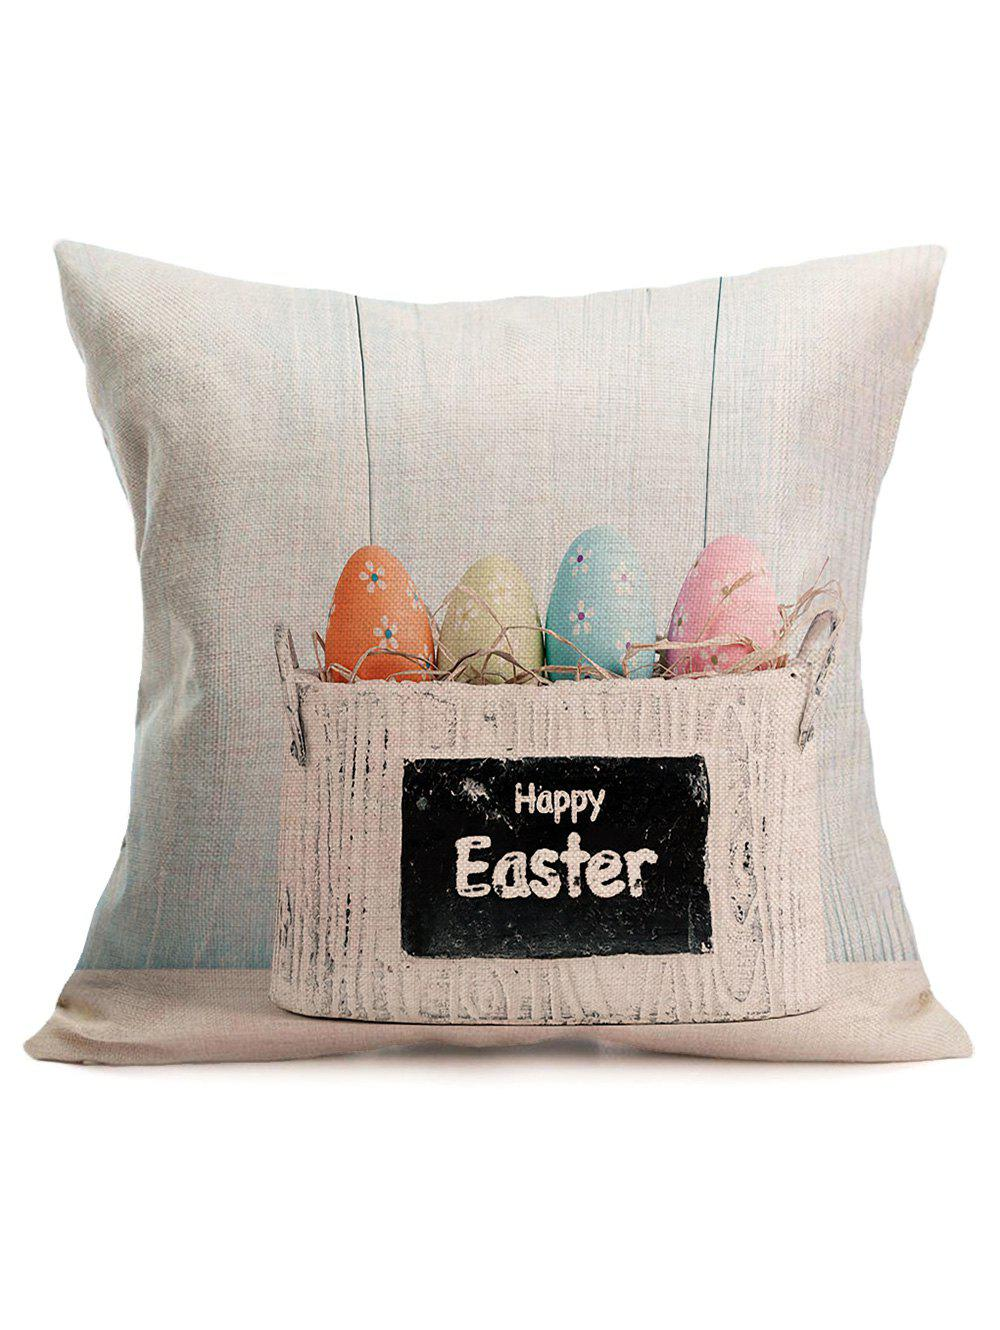 Easter Colors Eggs Printing Cotton Square PillowcaseHOME<br><br>Color: COLORMIX; Material: Polyester / Cotton; Fabric Type: Linen; Pattern: Printed; Style: Accent/Decorative; Shape: Square; Size(CM): 43*43CM; Weight: 0.1200kg; Package Contents: 1 x Pillowcase;